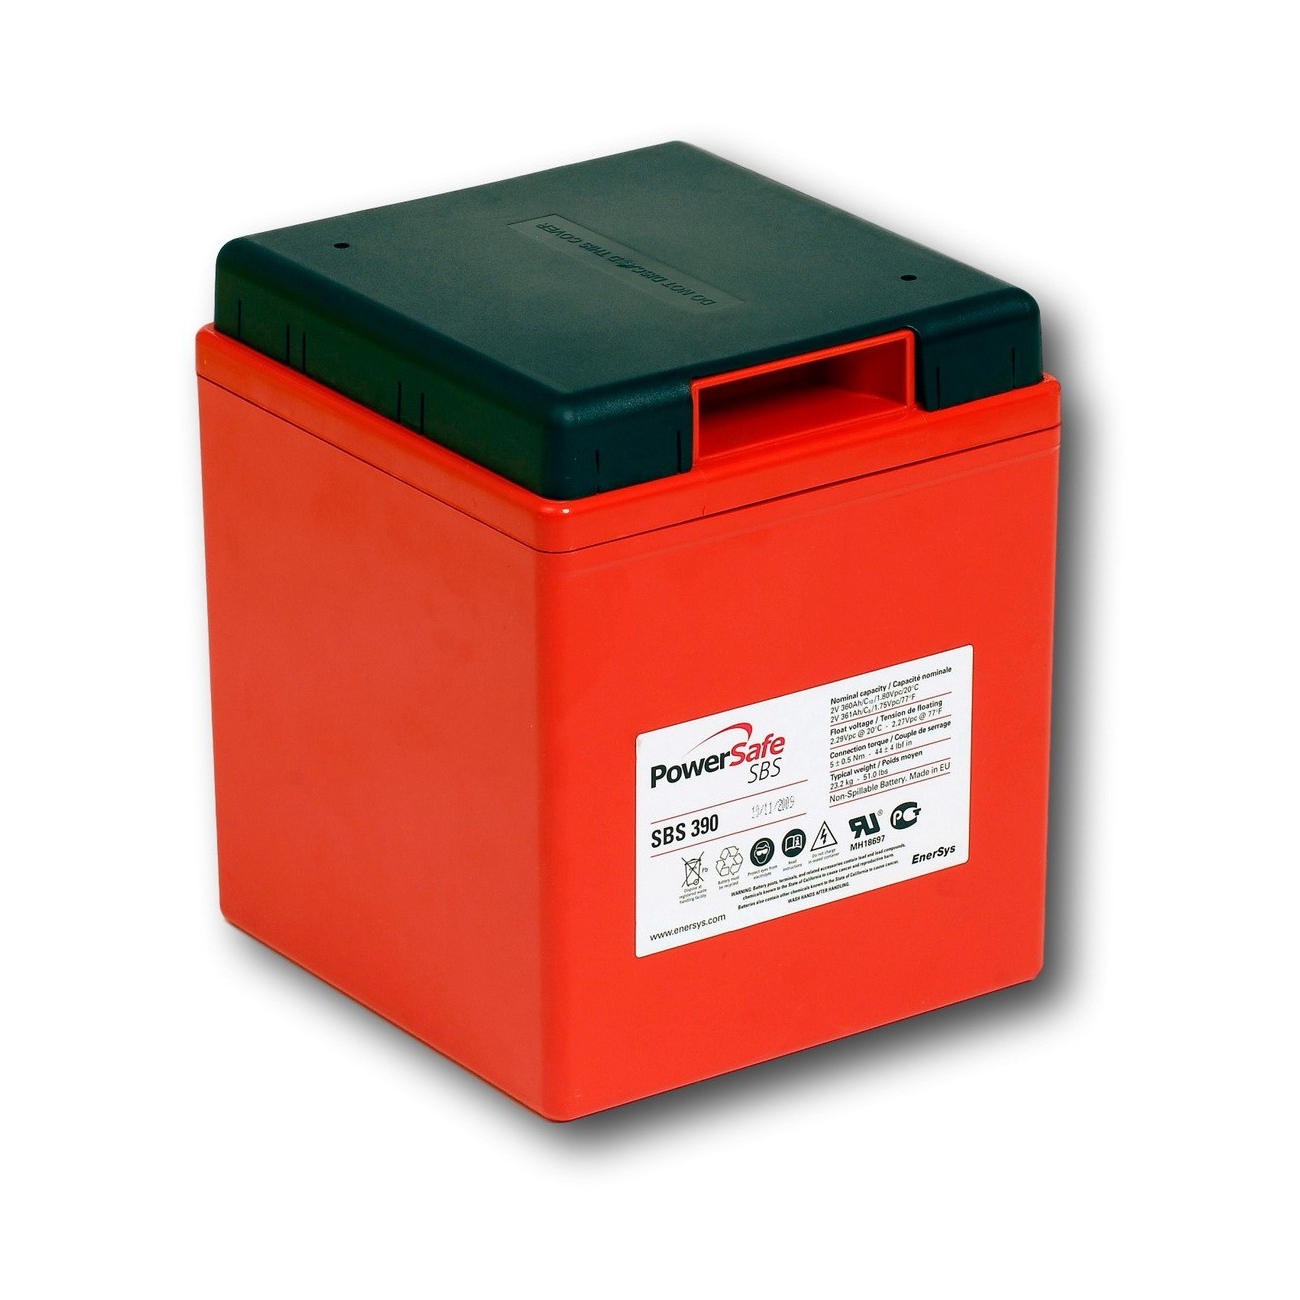 EnerSys PowerSafe SBS 390 2V 360Ah